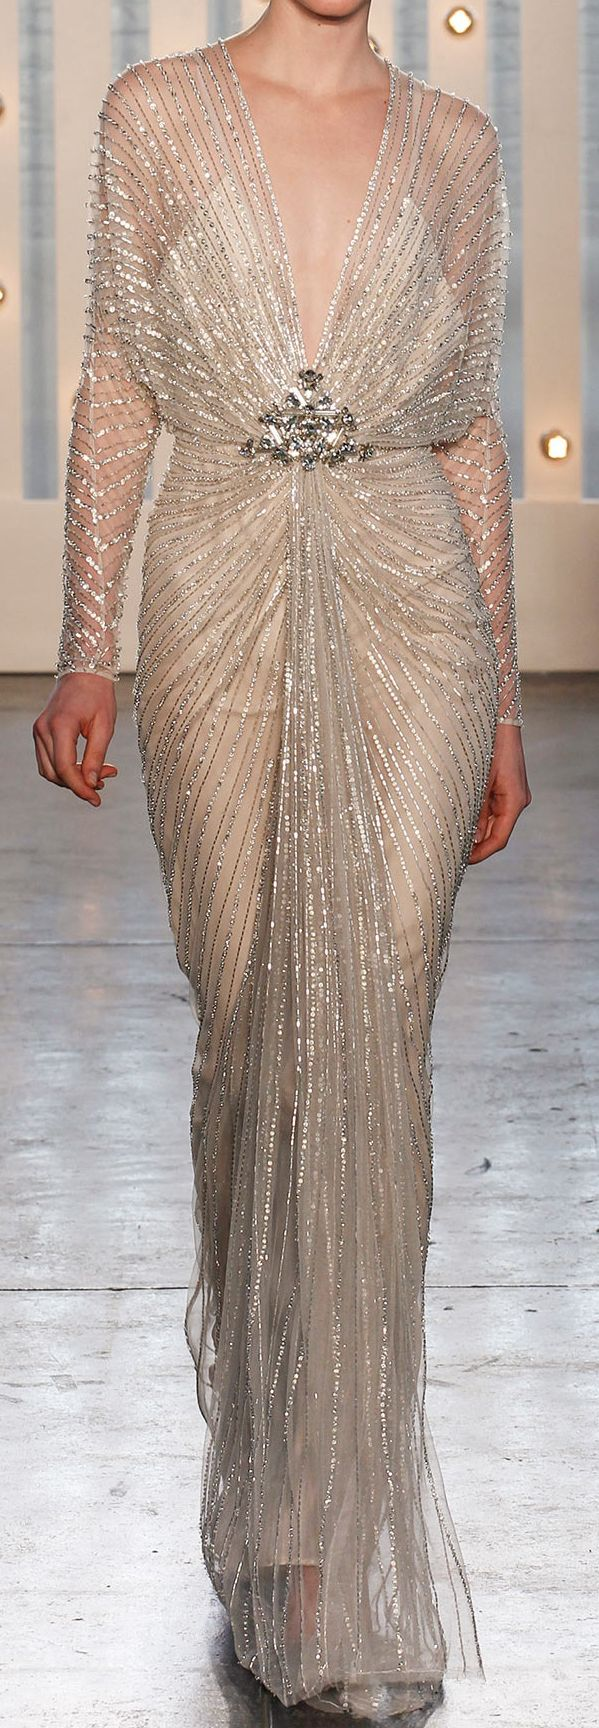 Pin by michelle chick on great gatsby party pinterest jenny